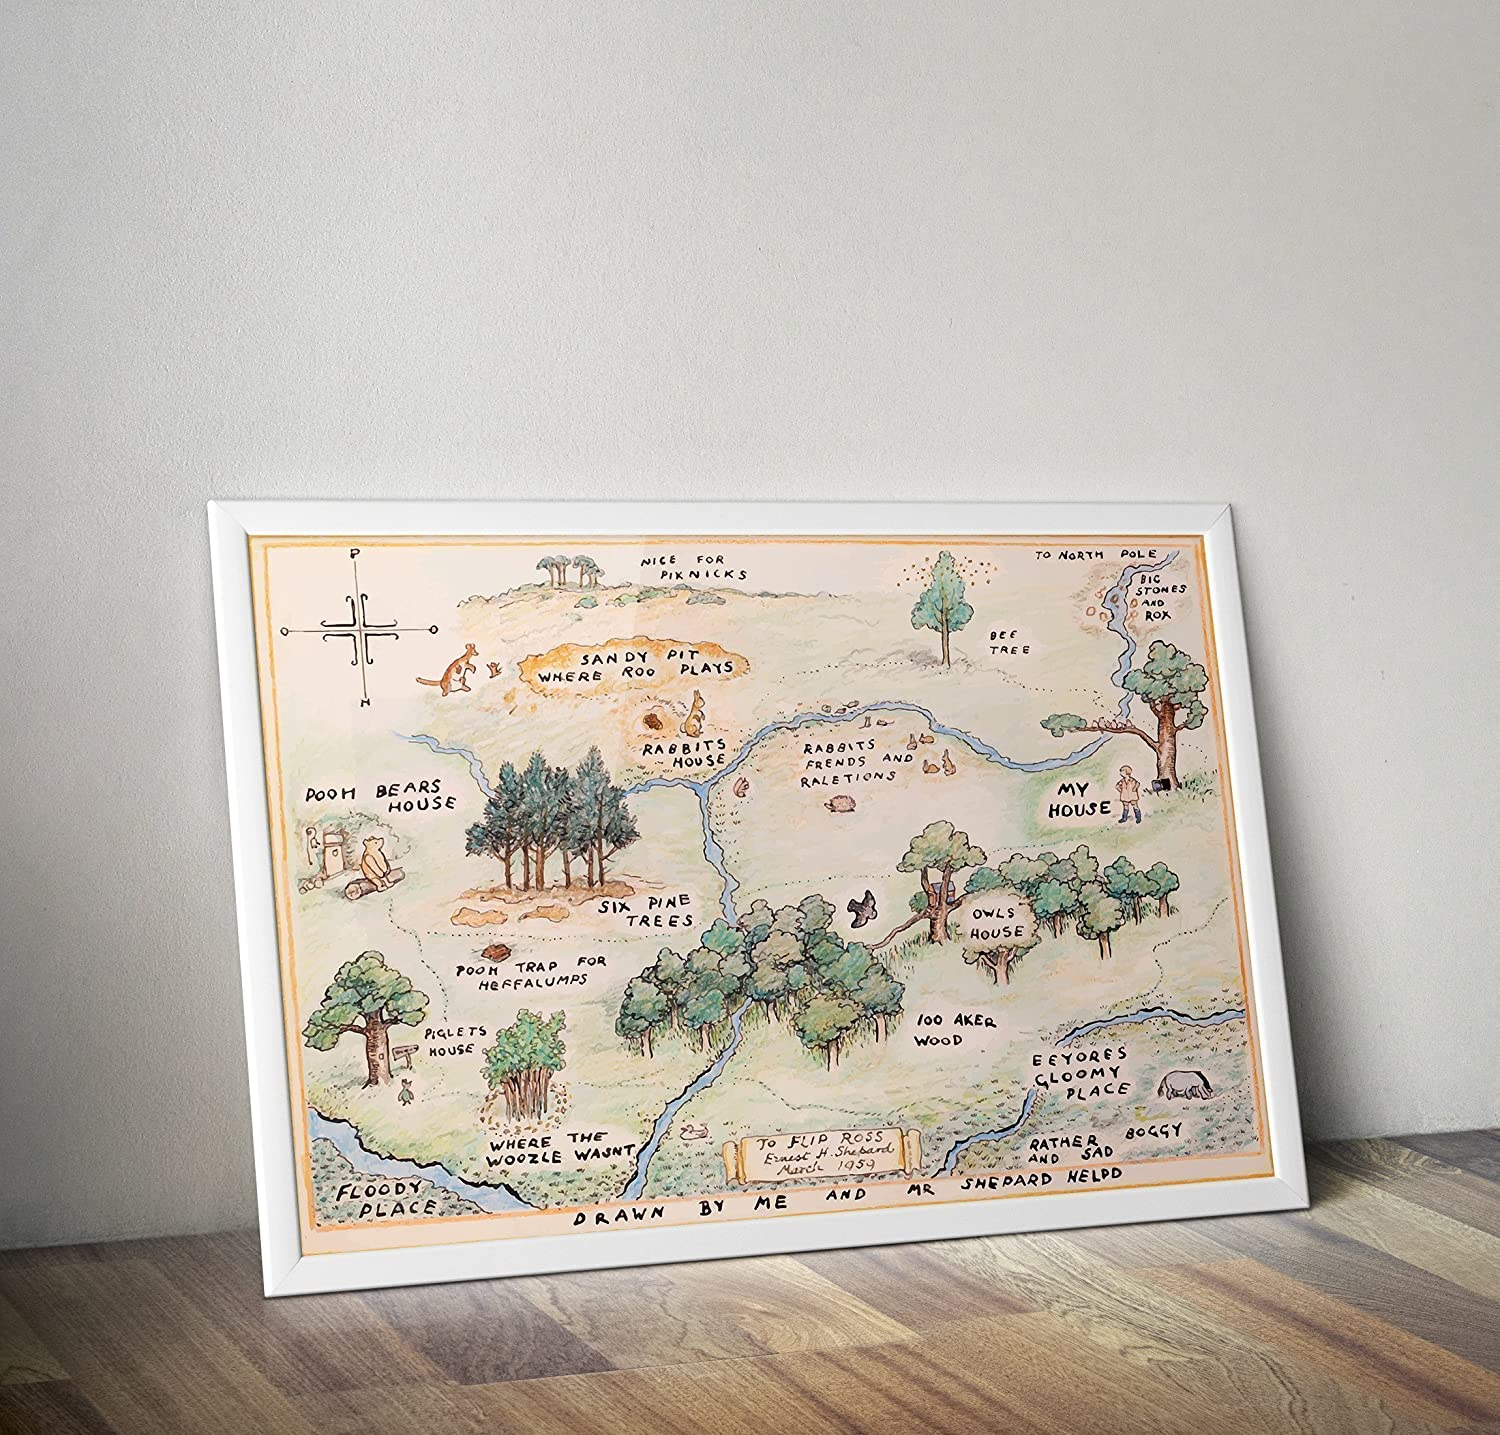 Winnie the Pooh Poster - Christopher robin Print - 100 Acker Wood Map - Alternative TV/Movie Prints in Various Sizes(Frame Not Included)